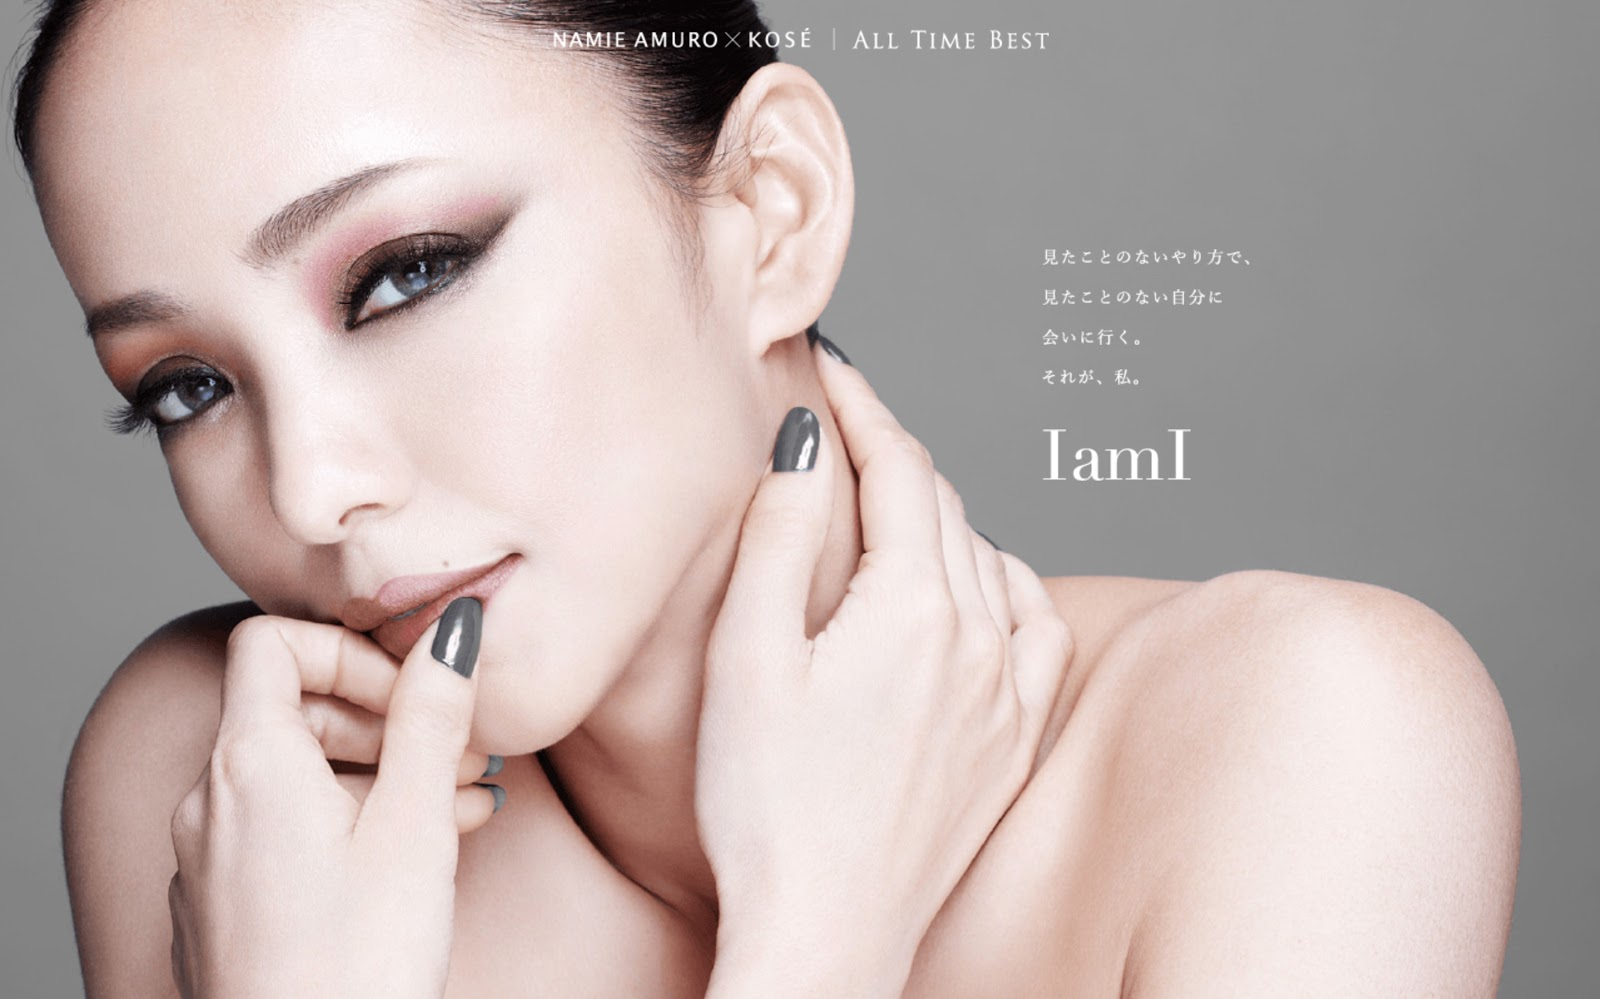 Namie Amuro Kose All Time Best Project 第4弾 アイカラー